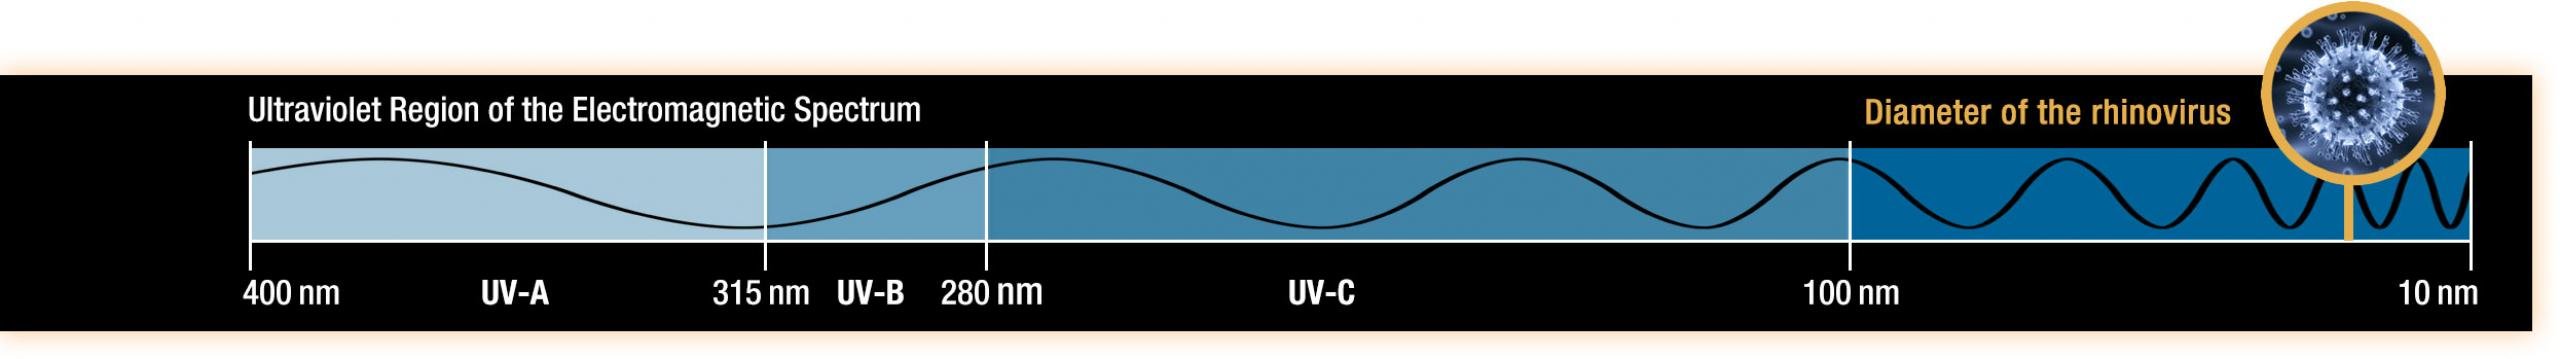 Illustration of an ultraviolet wave on the electromagnetic spectrum